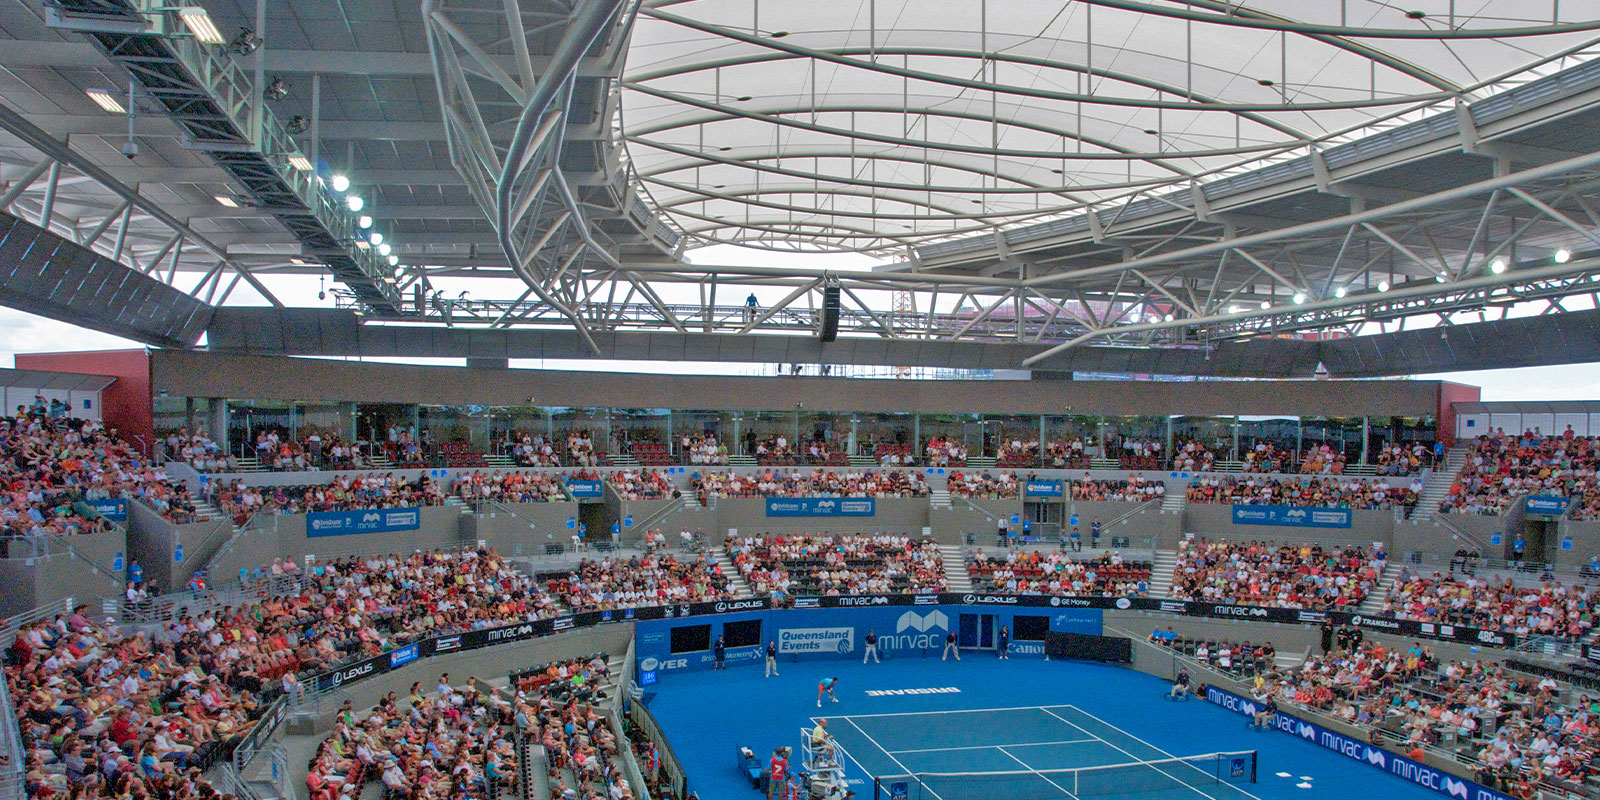 Pat Rafter Arena Centre Court Canopy